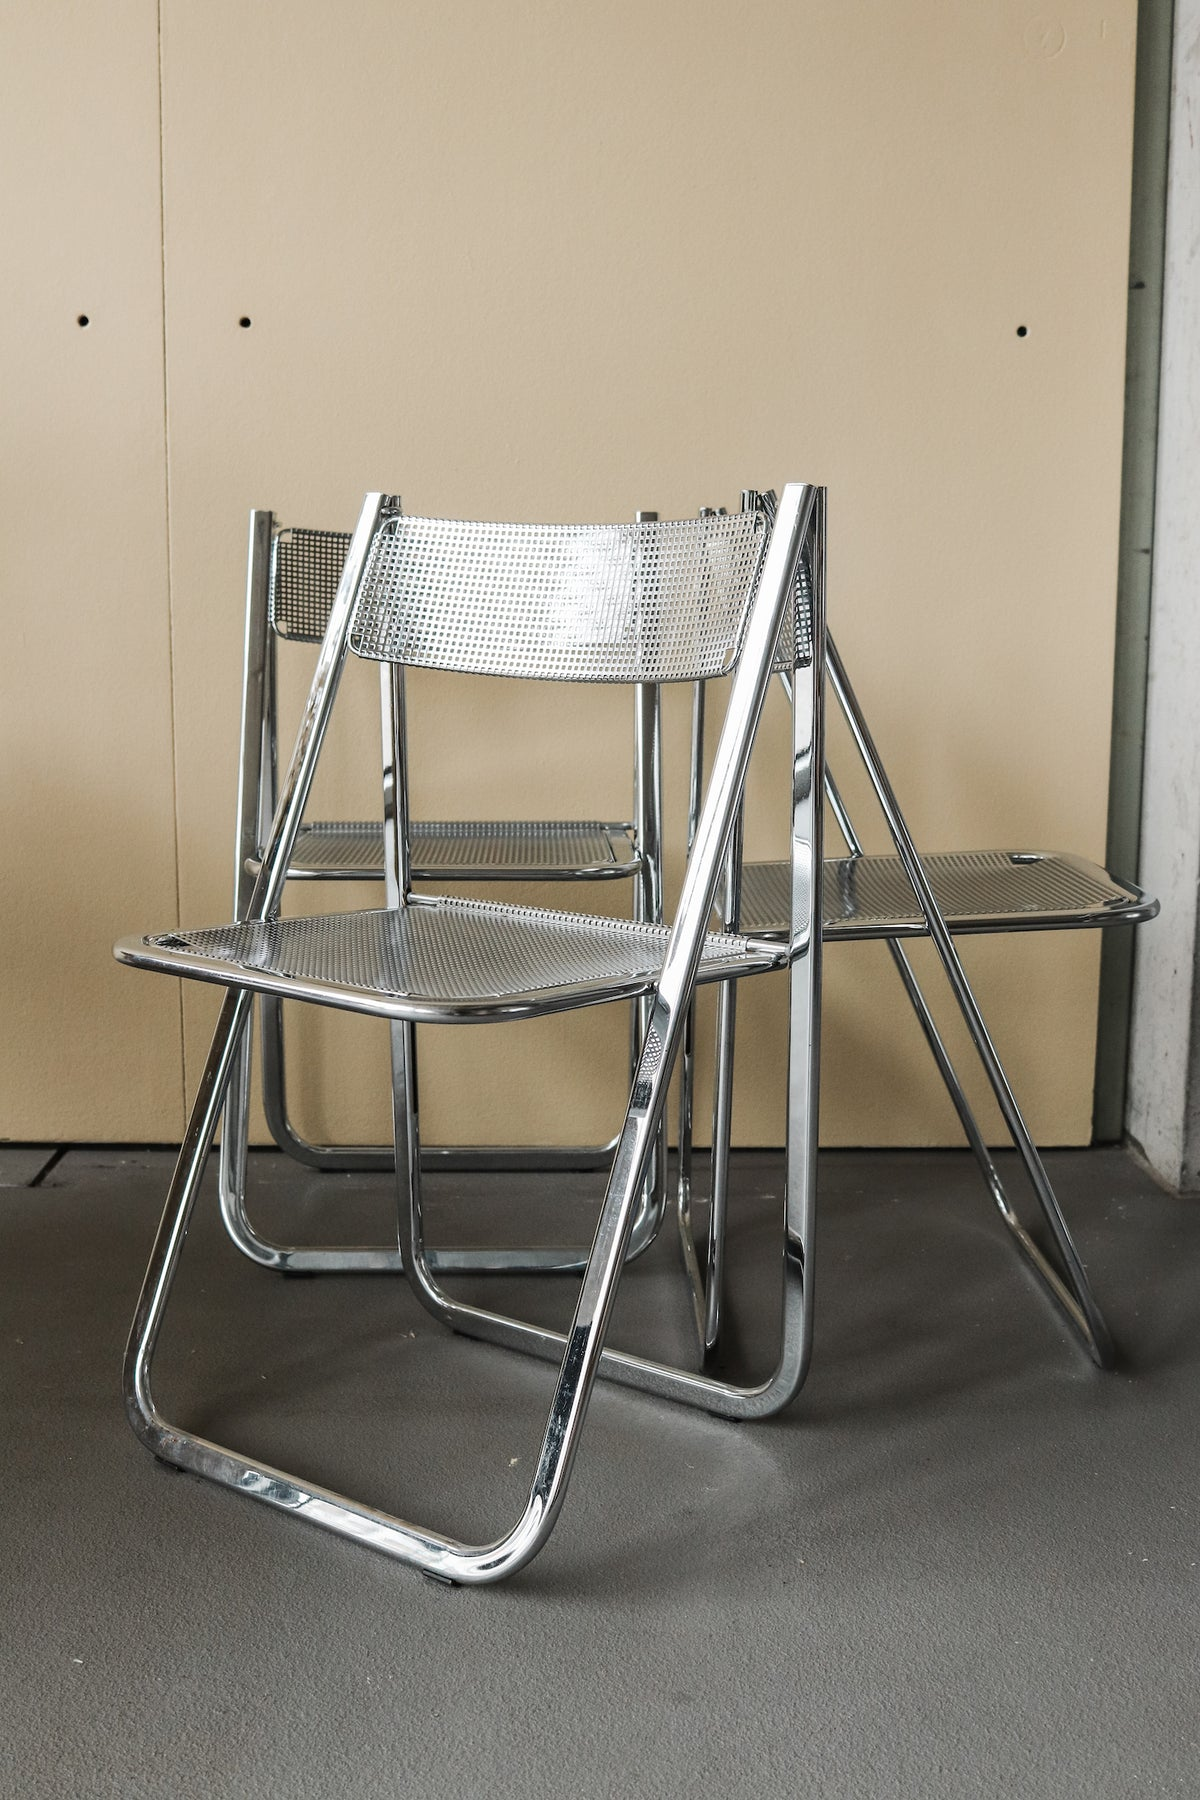 Chrome Folding Chair 'Tamara', Arrben Italy, 1970s